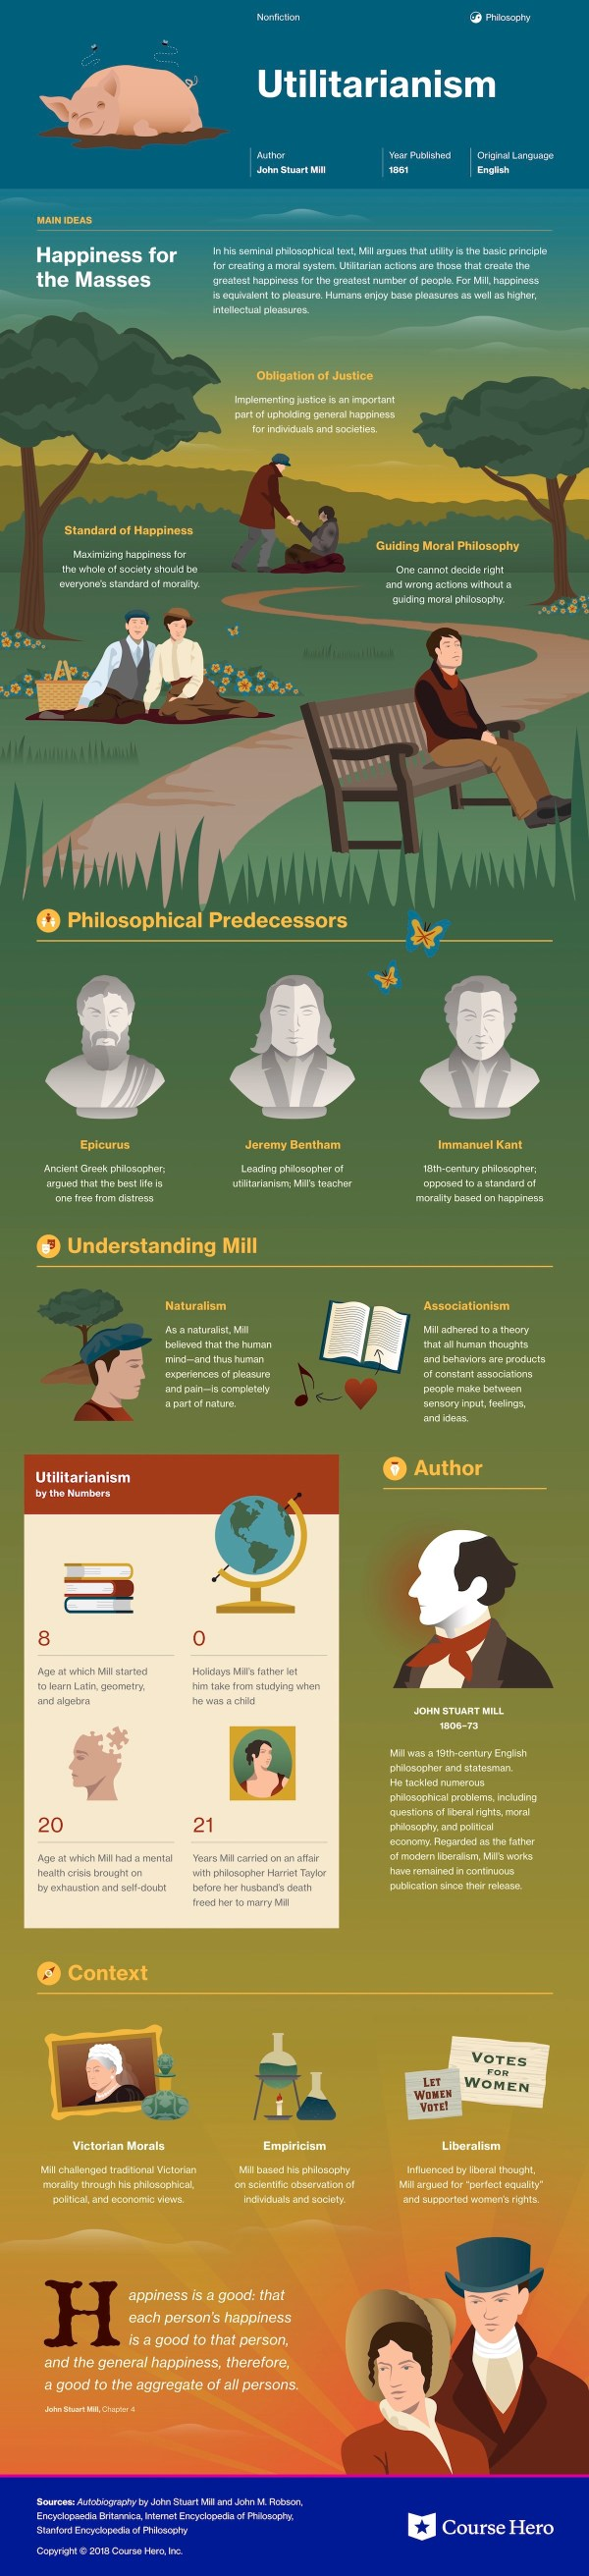 Ultilizarism Book Summary Educational Infographic